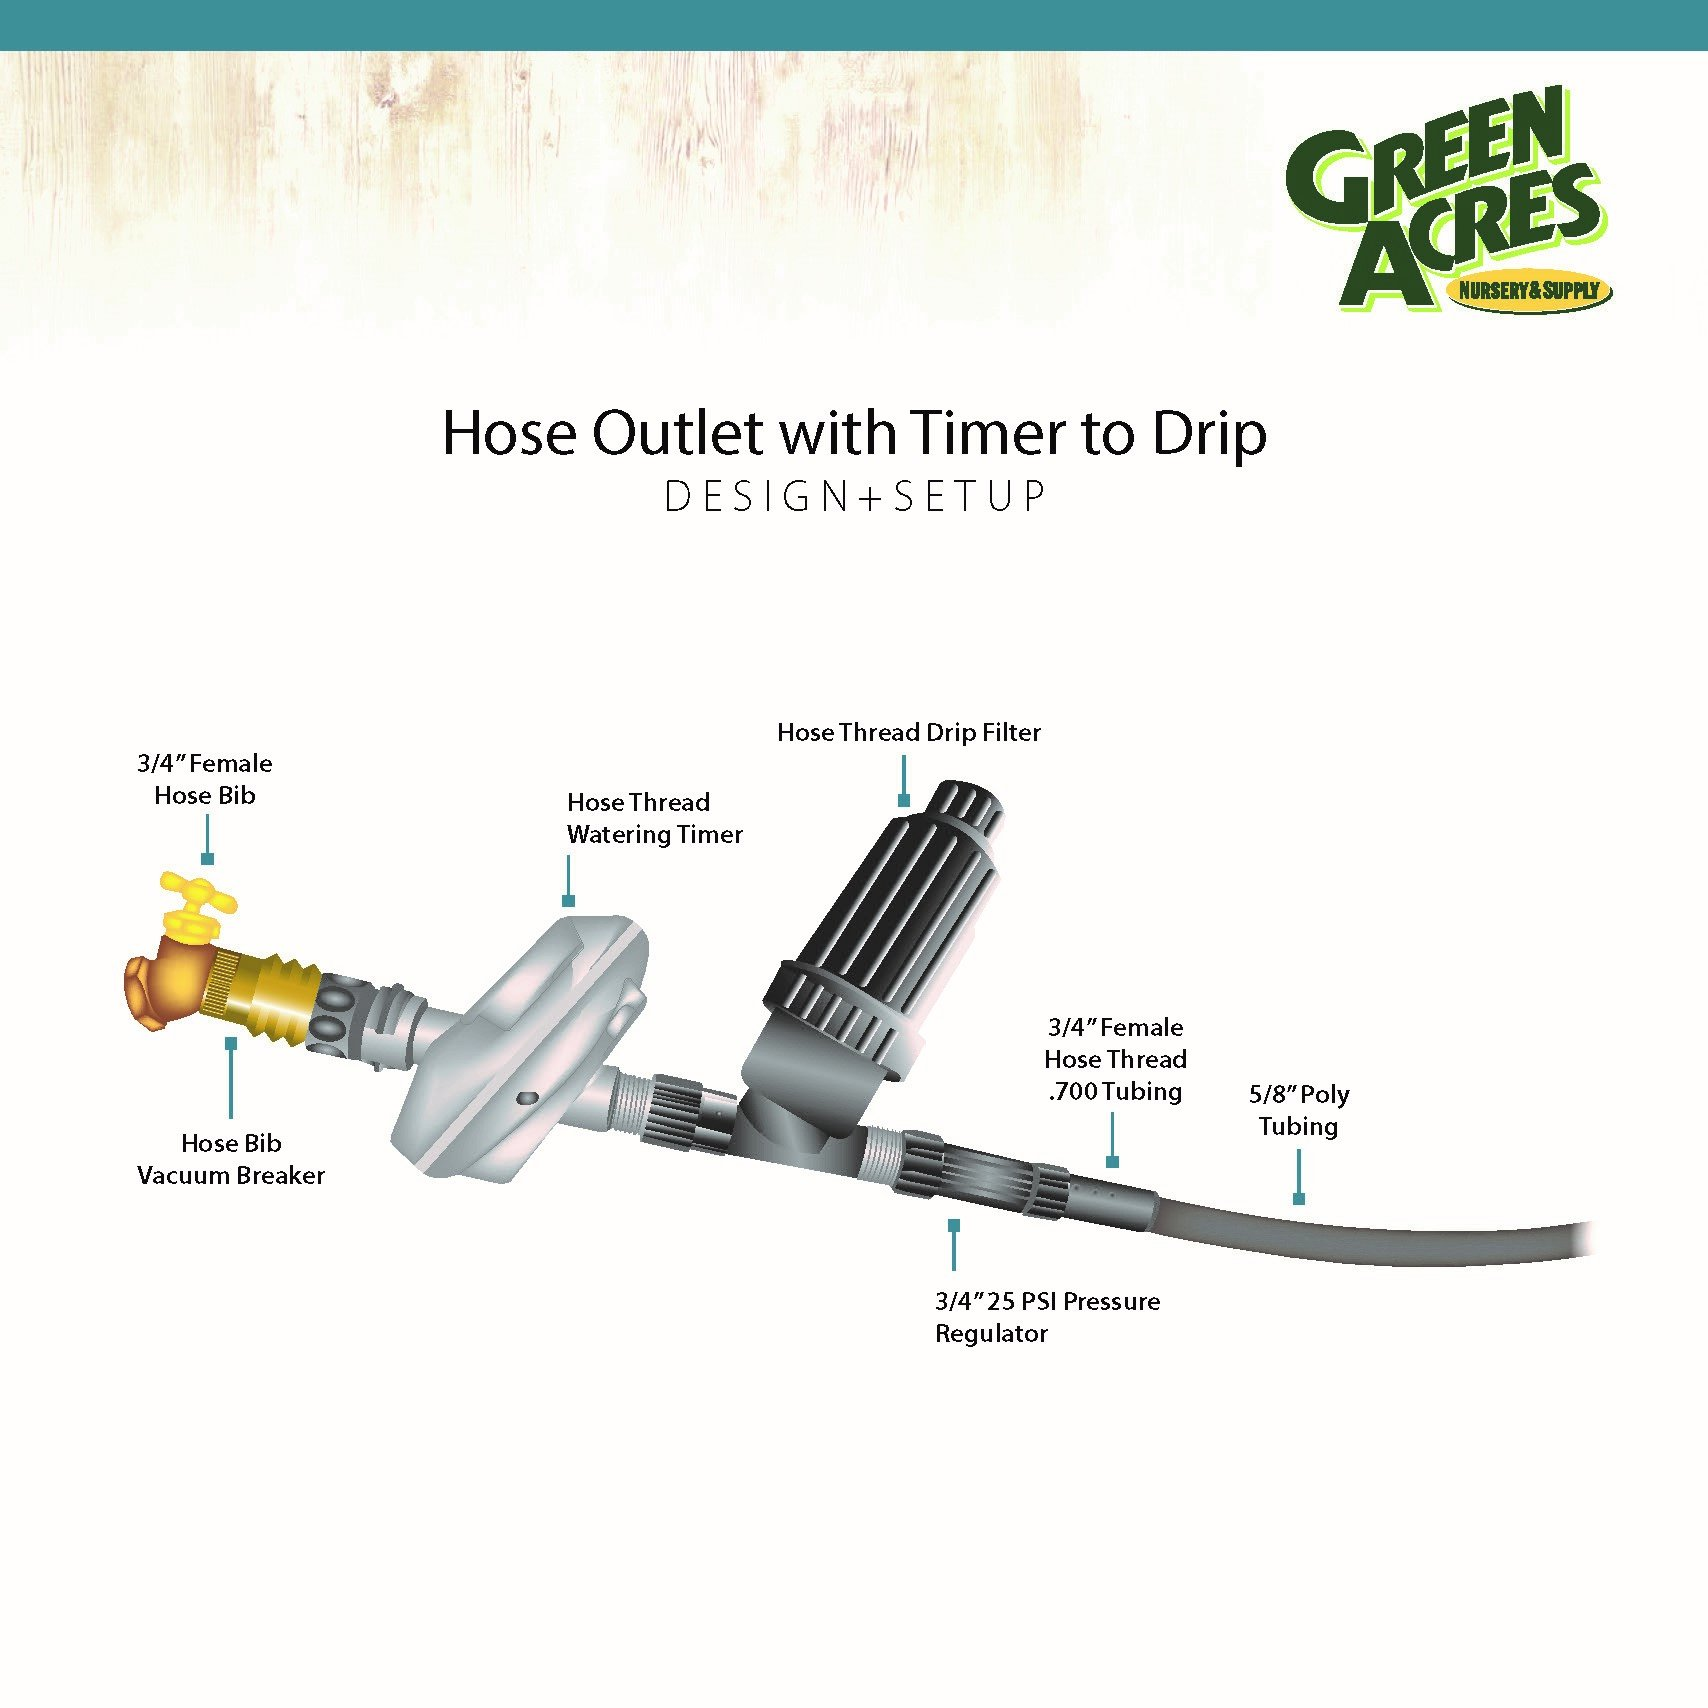 Diagram of Hose Outlet to Drip Conversion